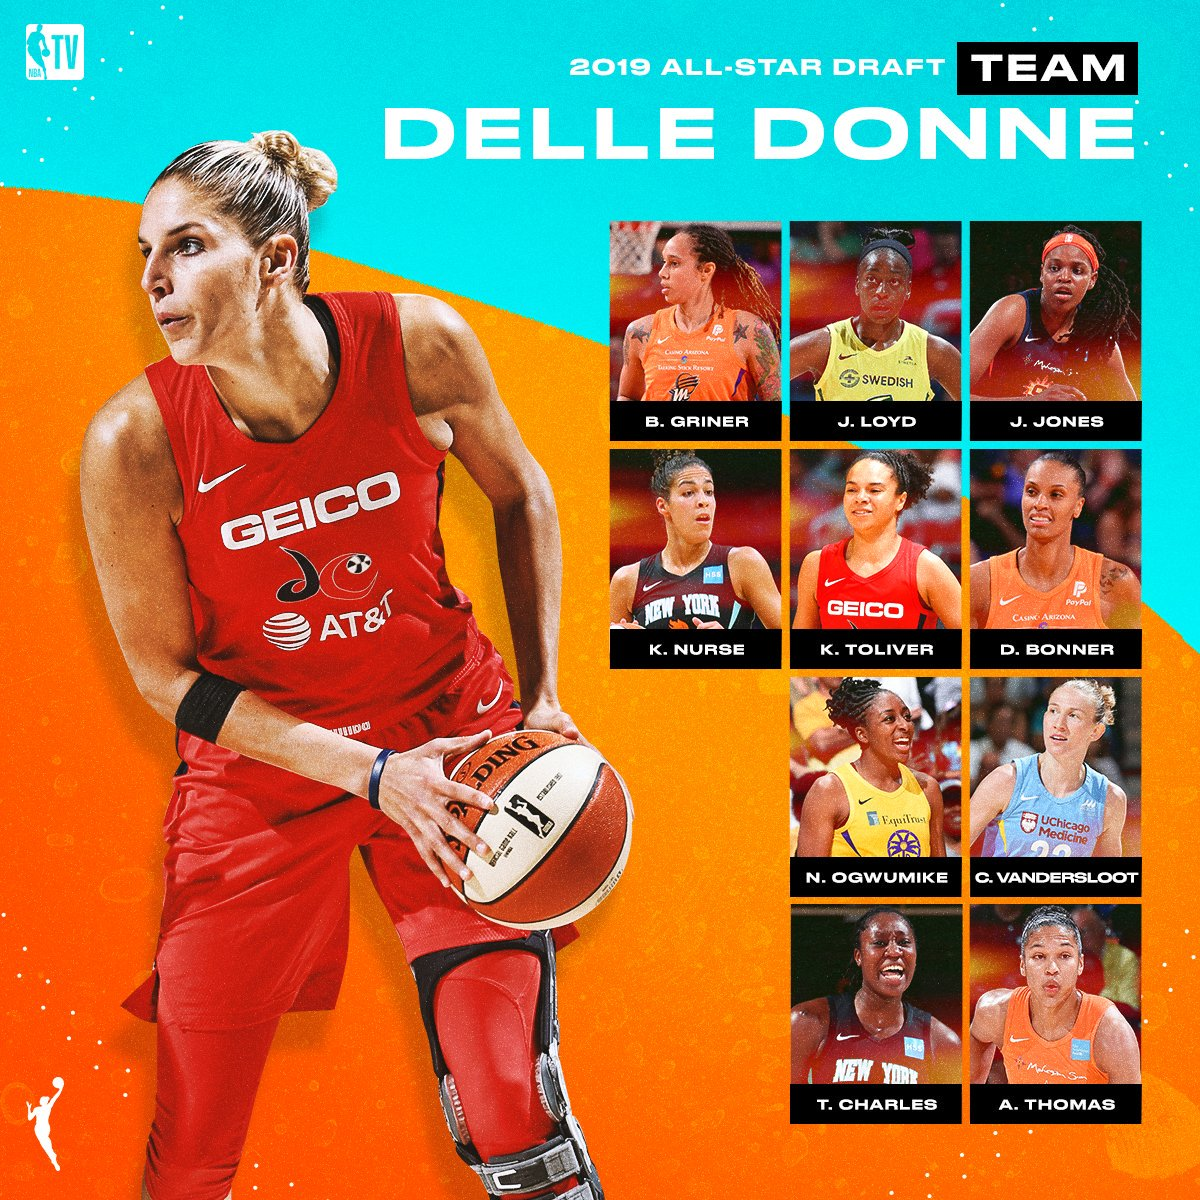 Elena Delle Donne's @WNBA All-Star team is ready to roll! 💪